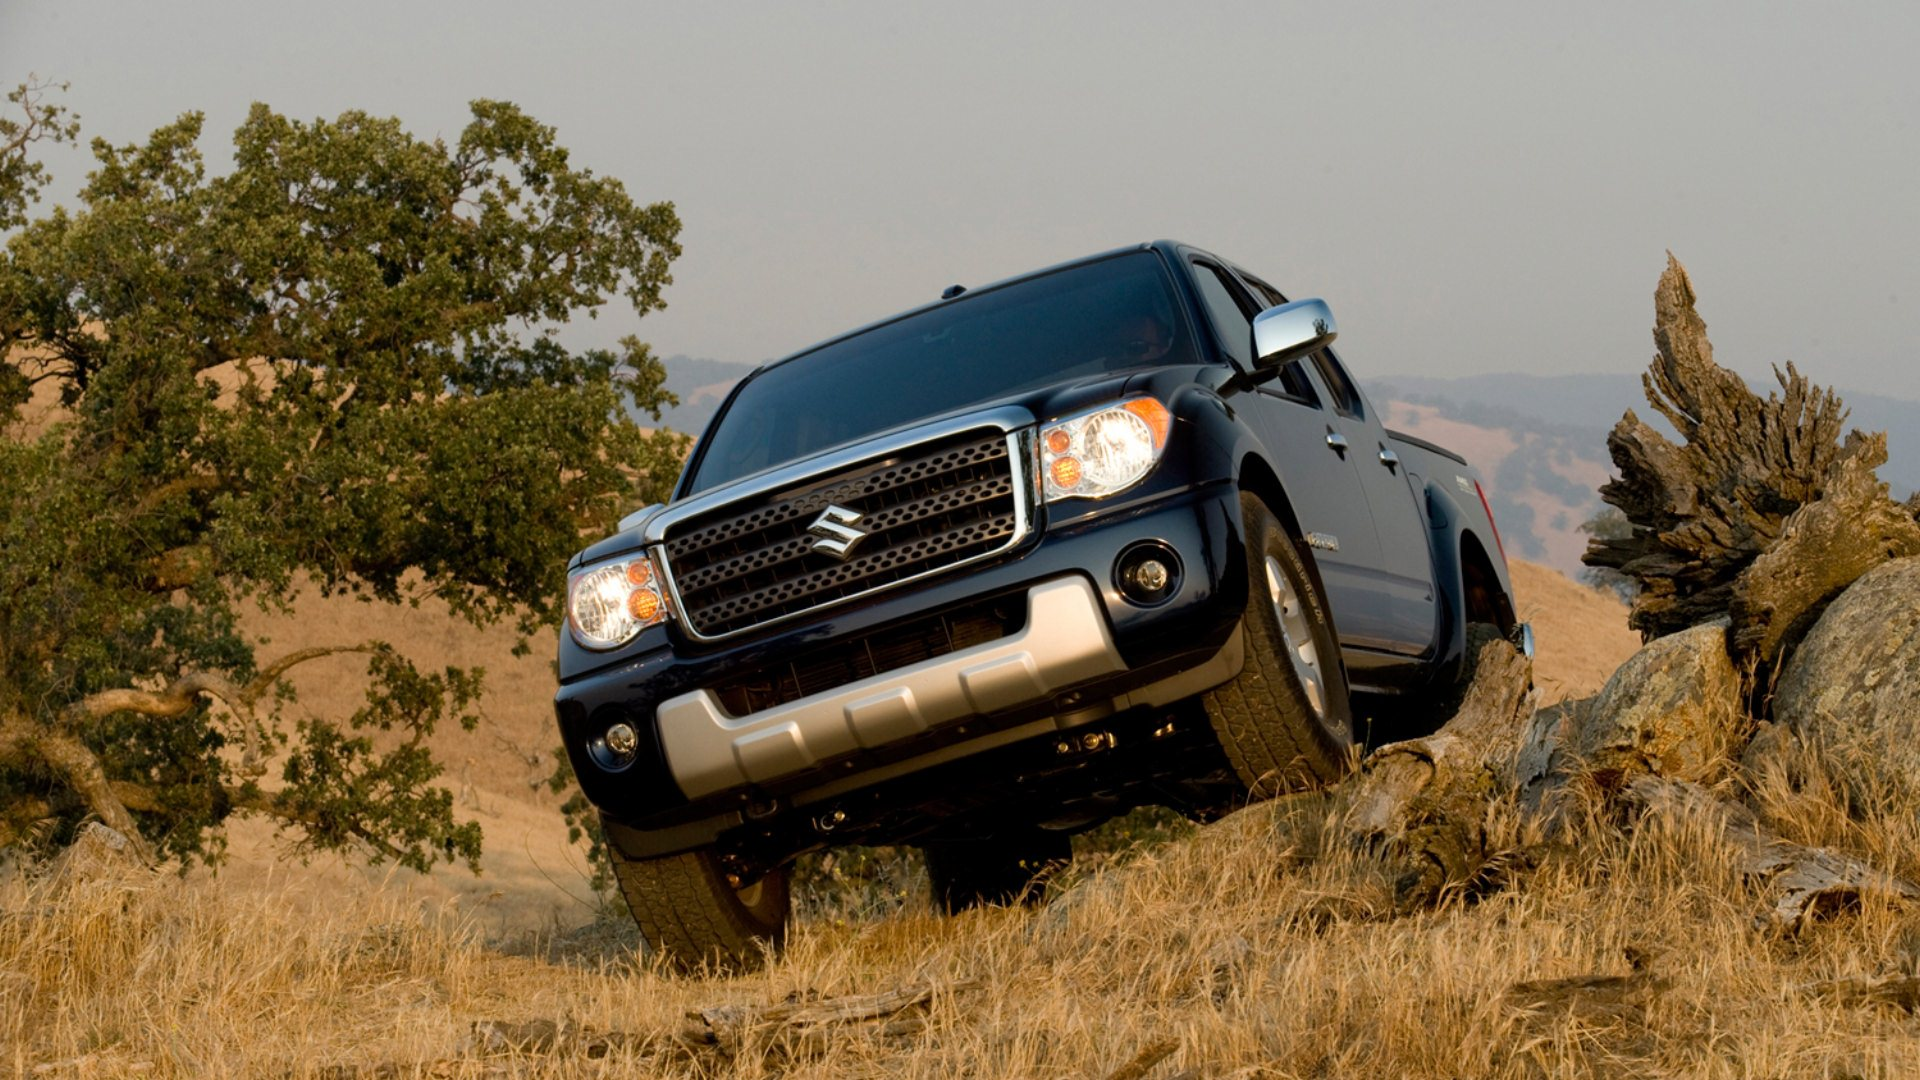 suzuki equator off road wallpaper background